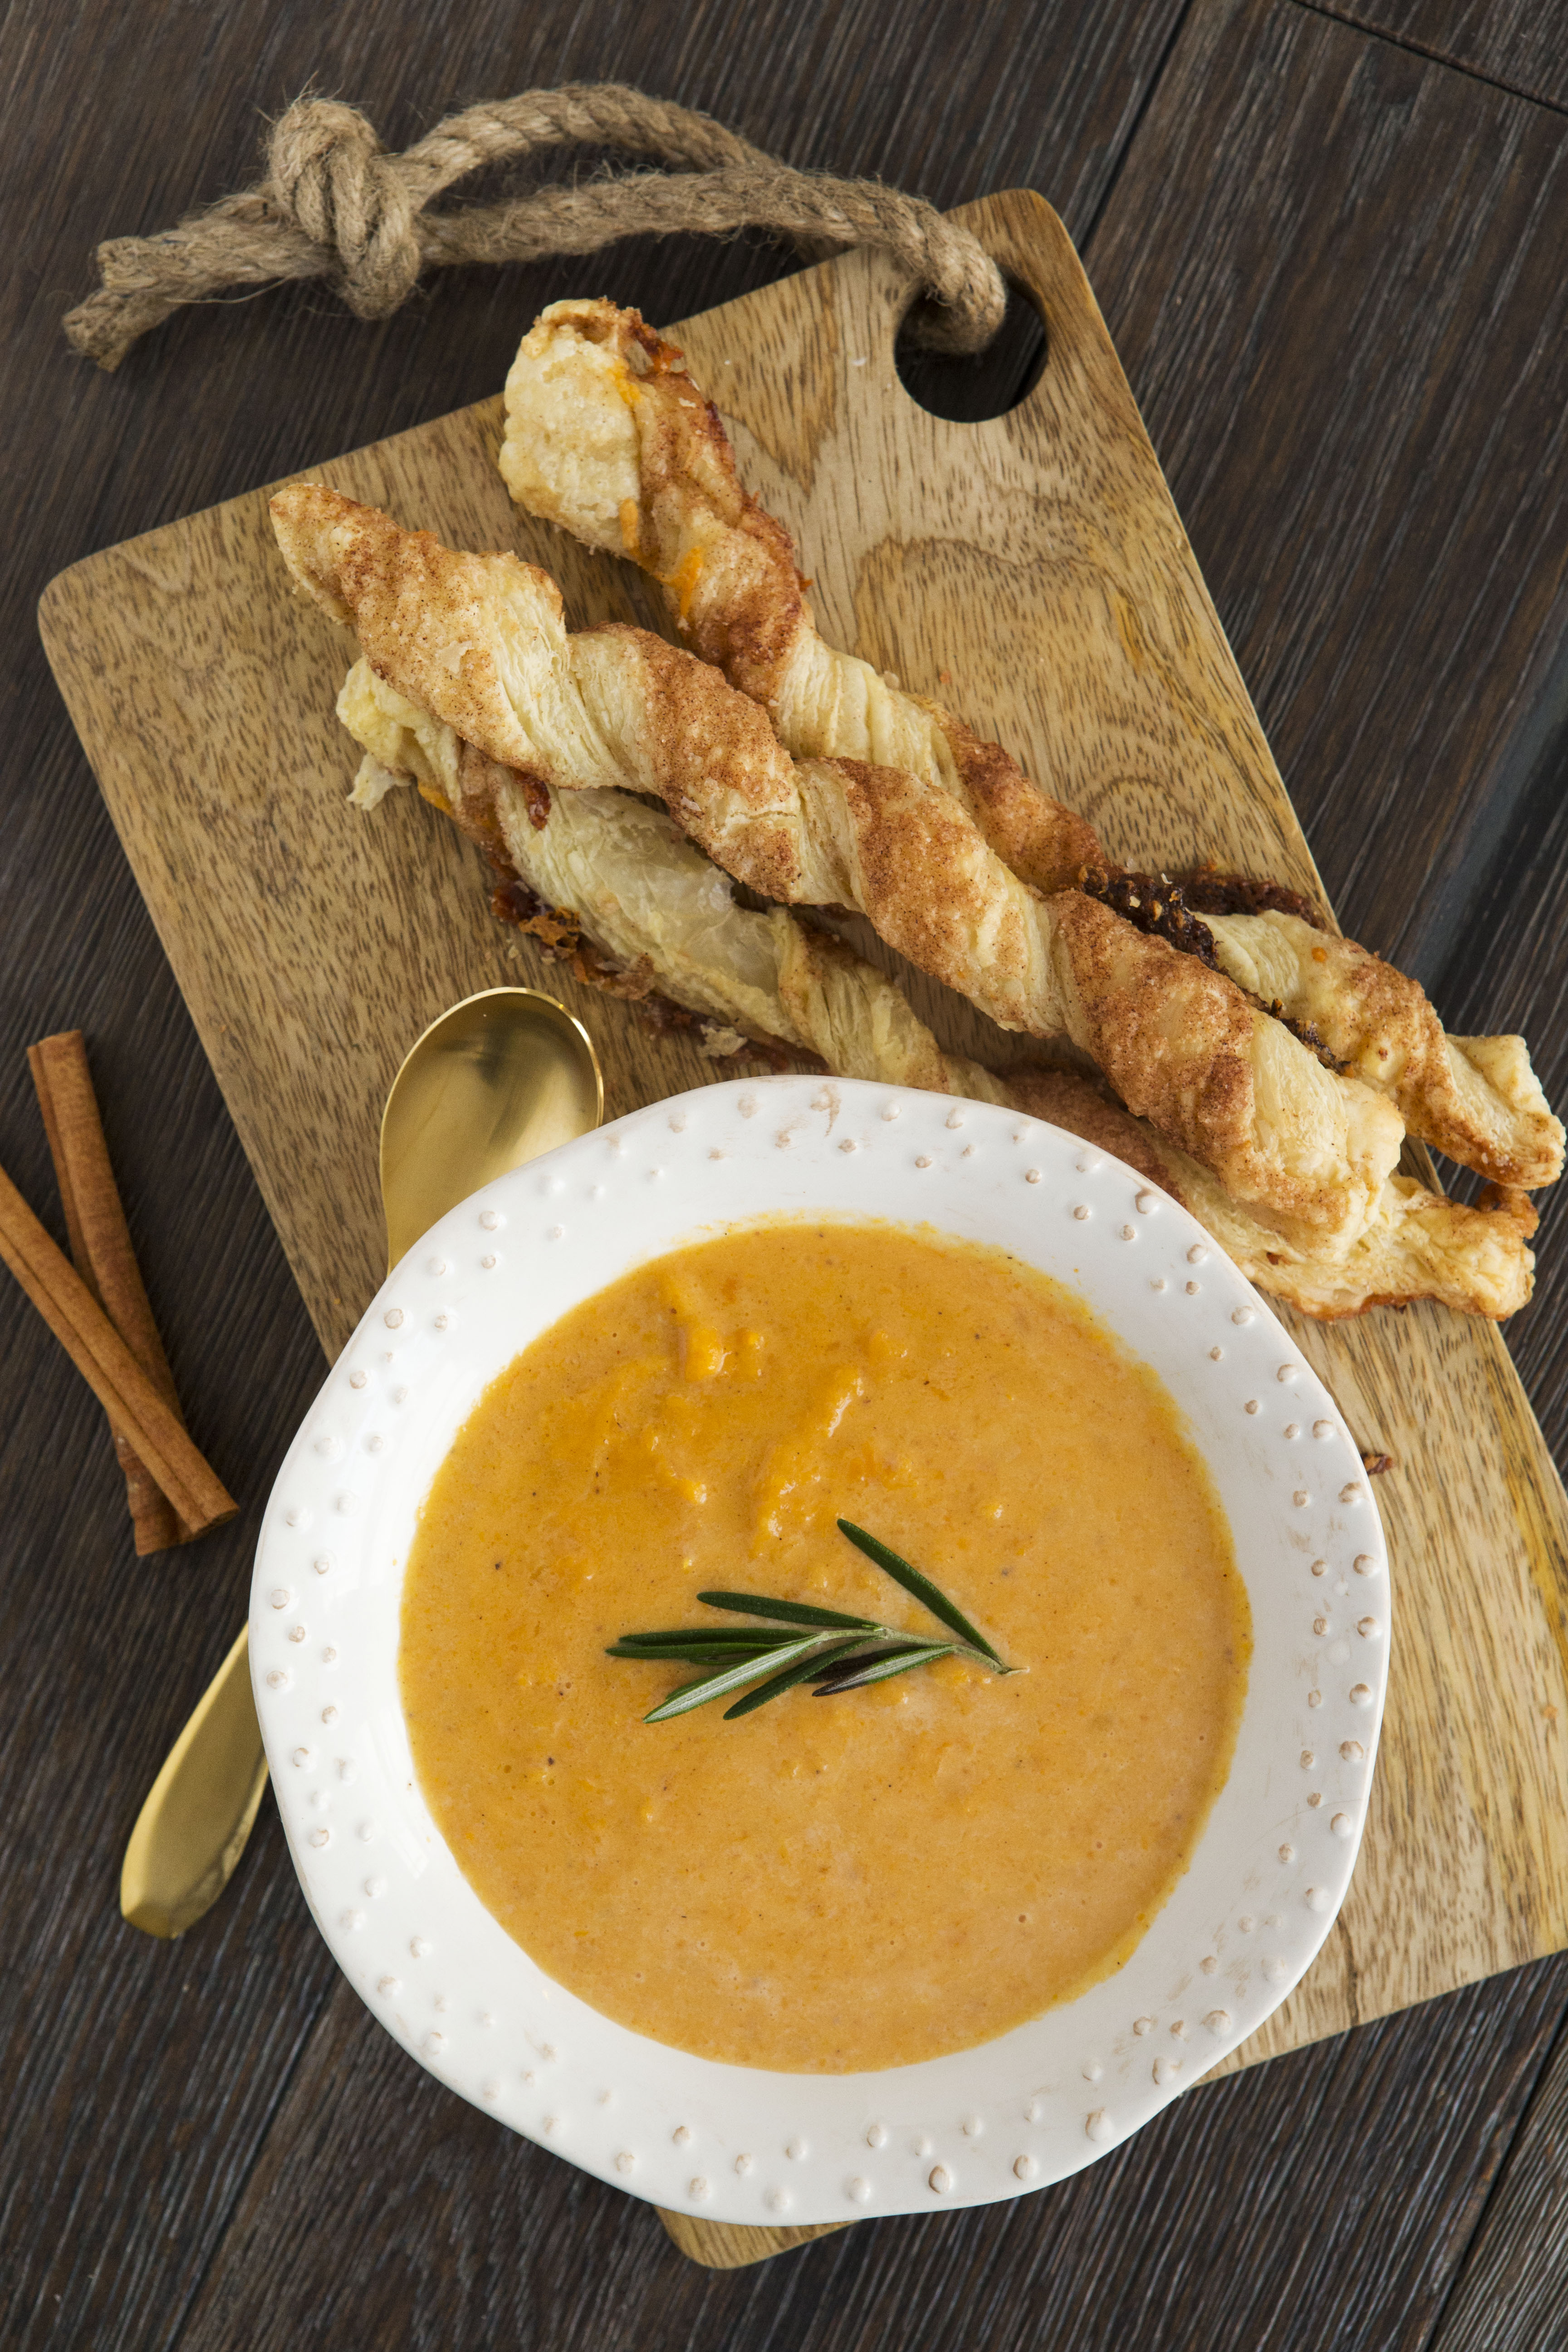 Sweet Potato Soup Ingredients: 3 to 4 sweet potatoes 1/2 cup maple syrup 1 teaspoon ground cinnamon 2 1/2 cups vegetable broth 1 cup apple cider 1/4 teaspoon nutmeg 1 cup heavy whipping cream 1/2 cup sharp cheddar cheese 2 tablespoons butter salt and pepper, to taste Directions: Bake sweet potatoes at 400 degrees for 1 hour. Meanwhile, add maple syrup and cinnamon to a large saucepan and bring to a boil. Reduce the heat and simmer for 15 minutes. The mixture should have a honey consistency. Peel the skins from the cooked sweet potatoes and add the potato to a food processor and purée with 1 cup of broth. Stir in sweet potato mixture with maple syrup mixture and add remaining broth, apple cider, nutmeg and salt and pepper. Cook over medium heat for 10 minutes. Add heavy whipping cream and cook for another 5 minutes. Then add cheese and butter and cook until cheese is melted through. Serve. Cinnamon Cheddar Twists Ingredients: 1 sheet puff pastry, thawed 1/4 cup butter, melted 2 tablespoons ground cinnamon 2 tablespoons sugar 1/2 cup of sharp cheddar cheese, shredded Directions: Preheat oven to 350 degrees. Cut puff pastry in 1 inch sections. Brush with melted butter. Mix cinnamon and sugar together and sprinkle on the buttered pastry. Sprinkle cheese on top. Take each end of the pastry and twist. Place on greased baking sheet. Cook for 10 to 15 minutes or until golden brown.